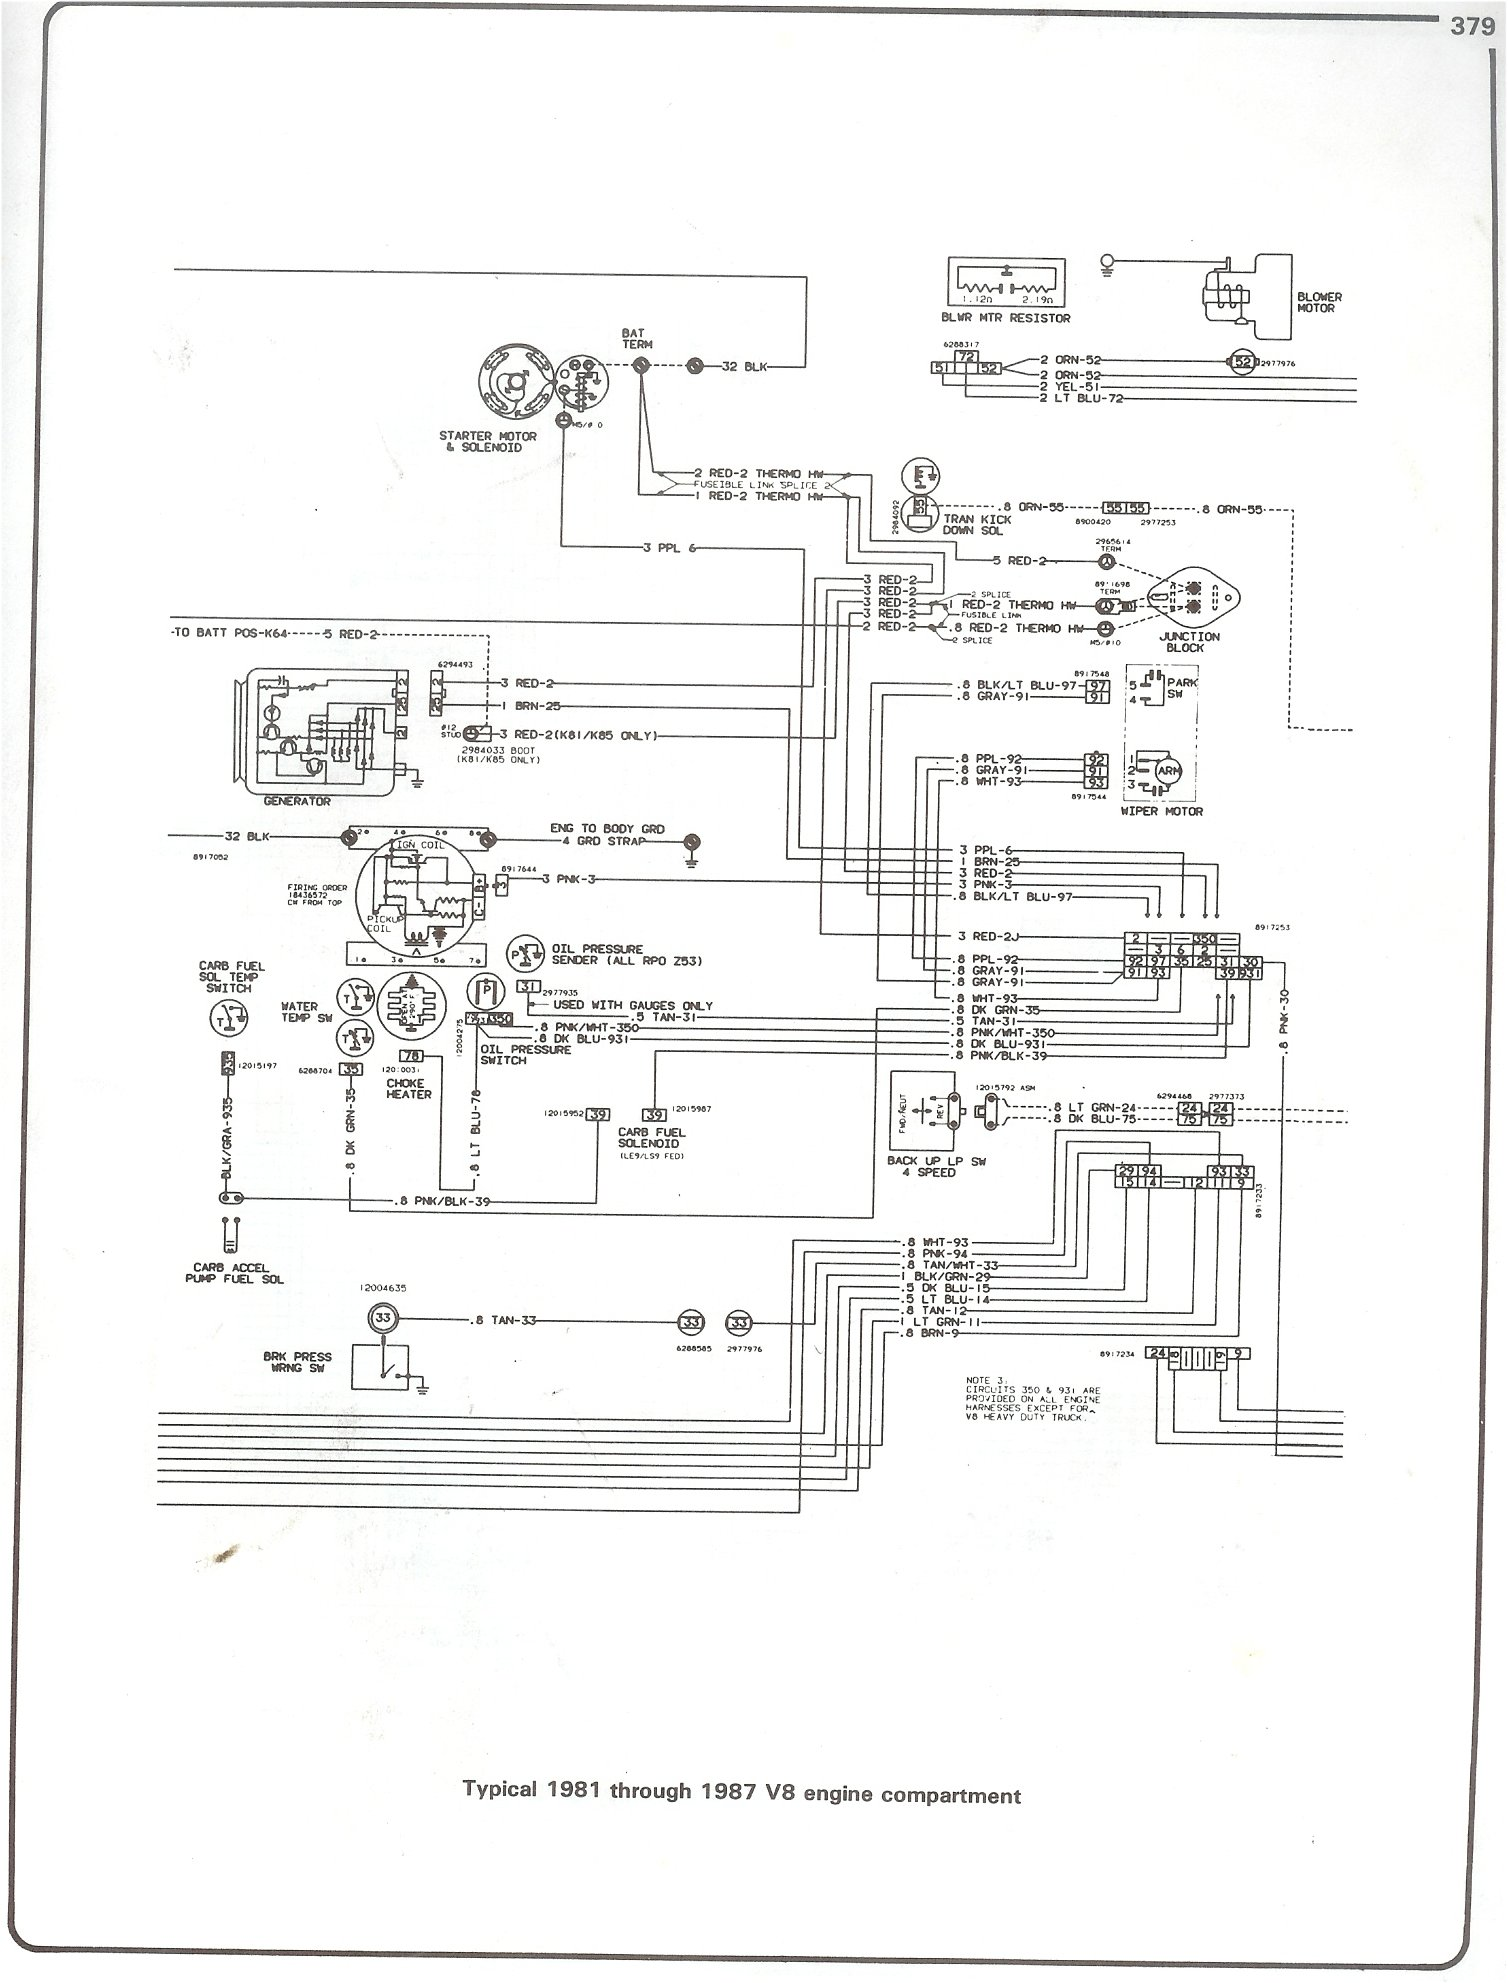 1979 C10 Wiring Diagram Free For You Chevy Truck Headlight Complete 73 87 Diagrams Rh Forum 87chevytrucks Com 70